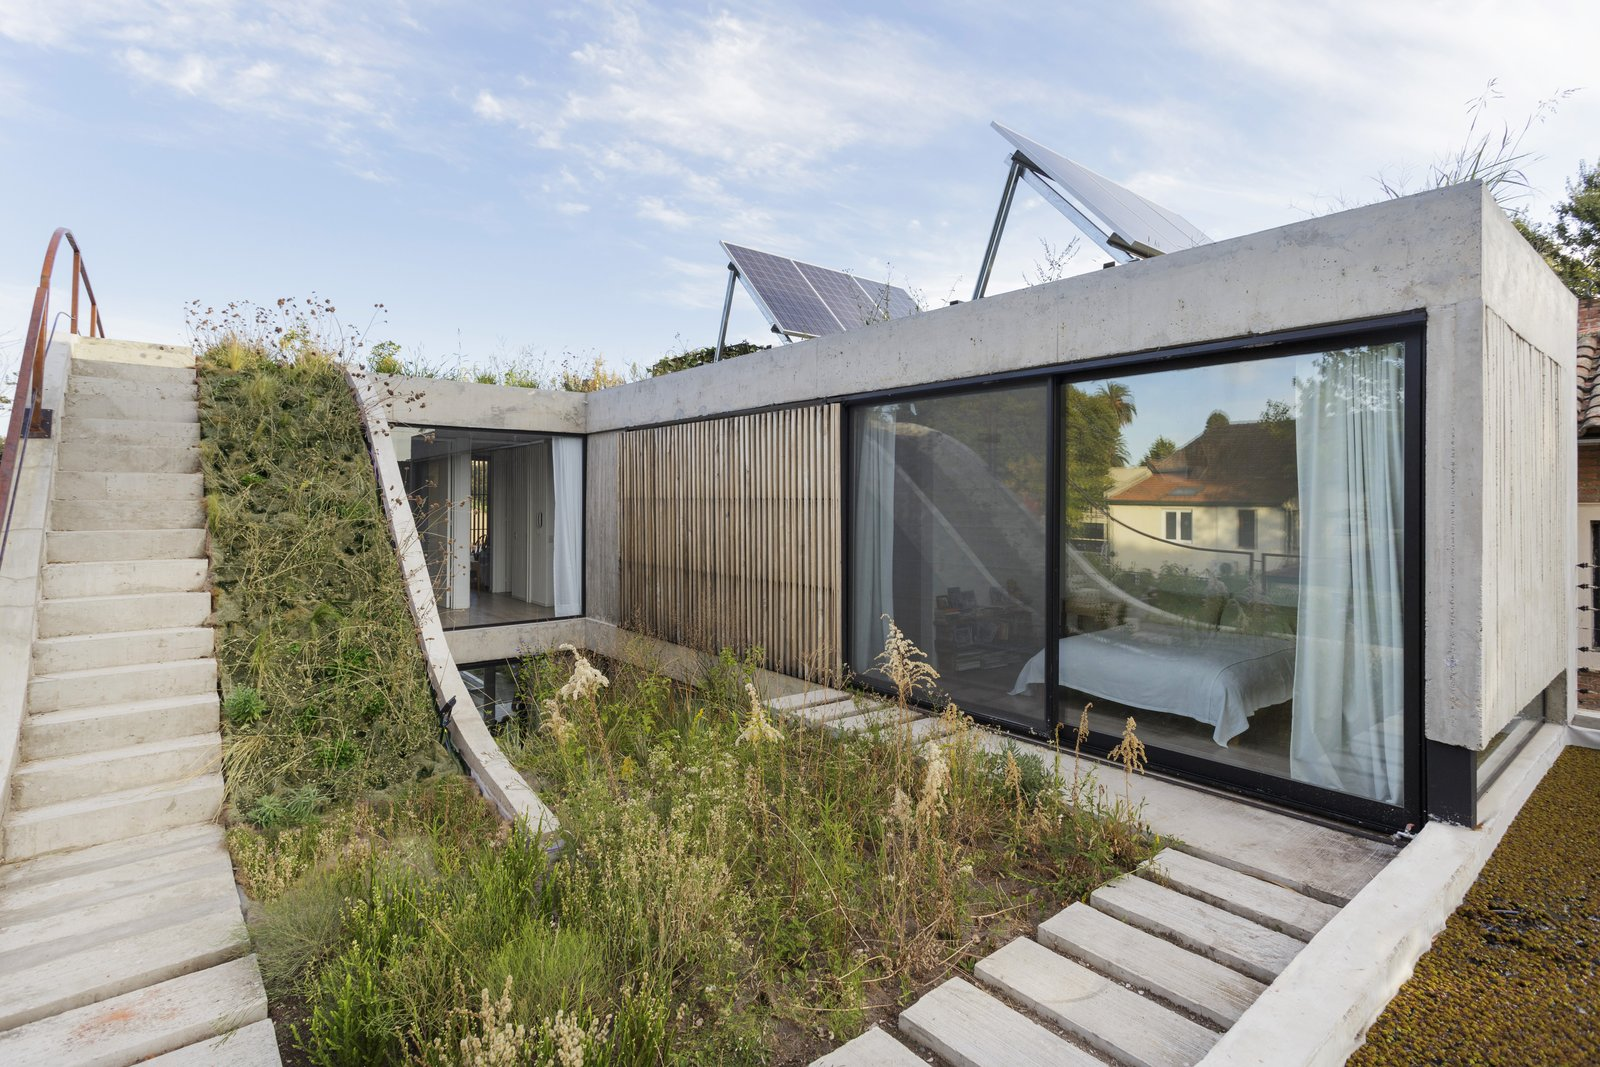 Outdoor, Rooftop, Hardscapes, Walkways, Concrete Patio, Porch, Deck, Gardens, Shrubs, and Garden The first floor with bedrooms overlooking rooftop gardens.  Photos from A Gardener's Home in Argentina Boasts Flowing Green Spaces